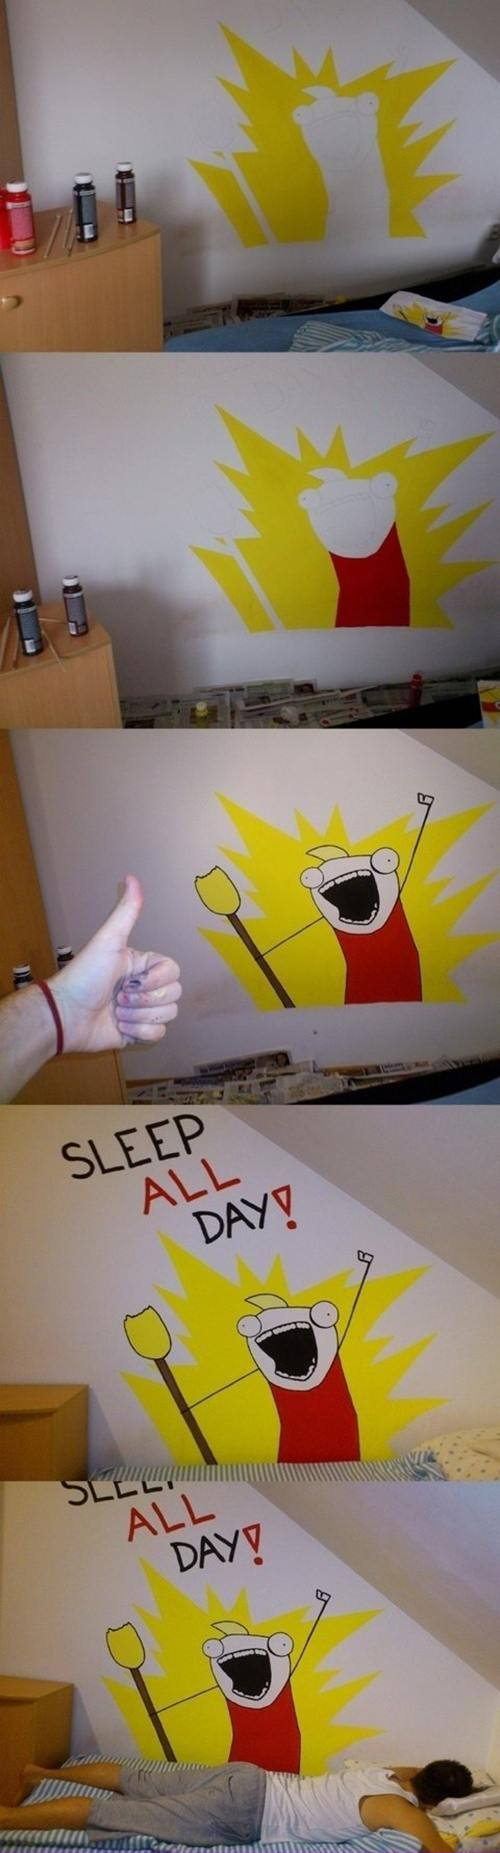 X All The Y All The Things Meme Sleep All The Day Wall Painting